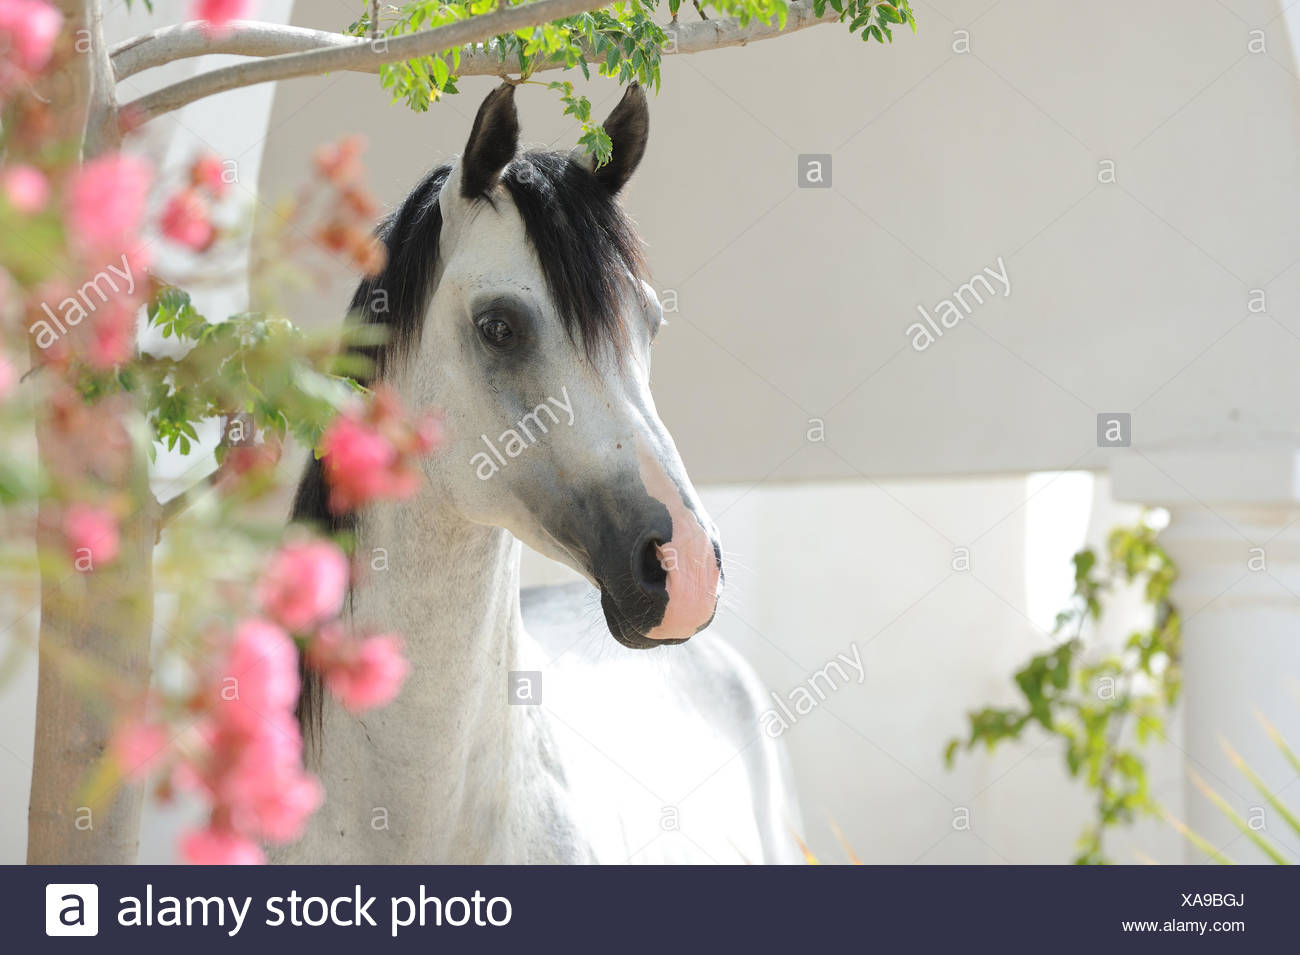 Purebred Arabian Horse. Portrait og gray stallion with pink flowers. Tunesia - Stock Image